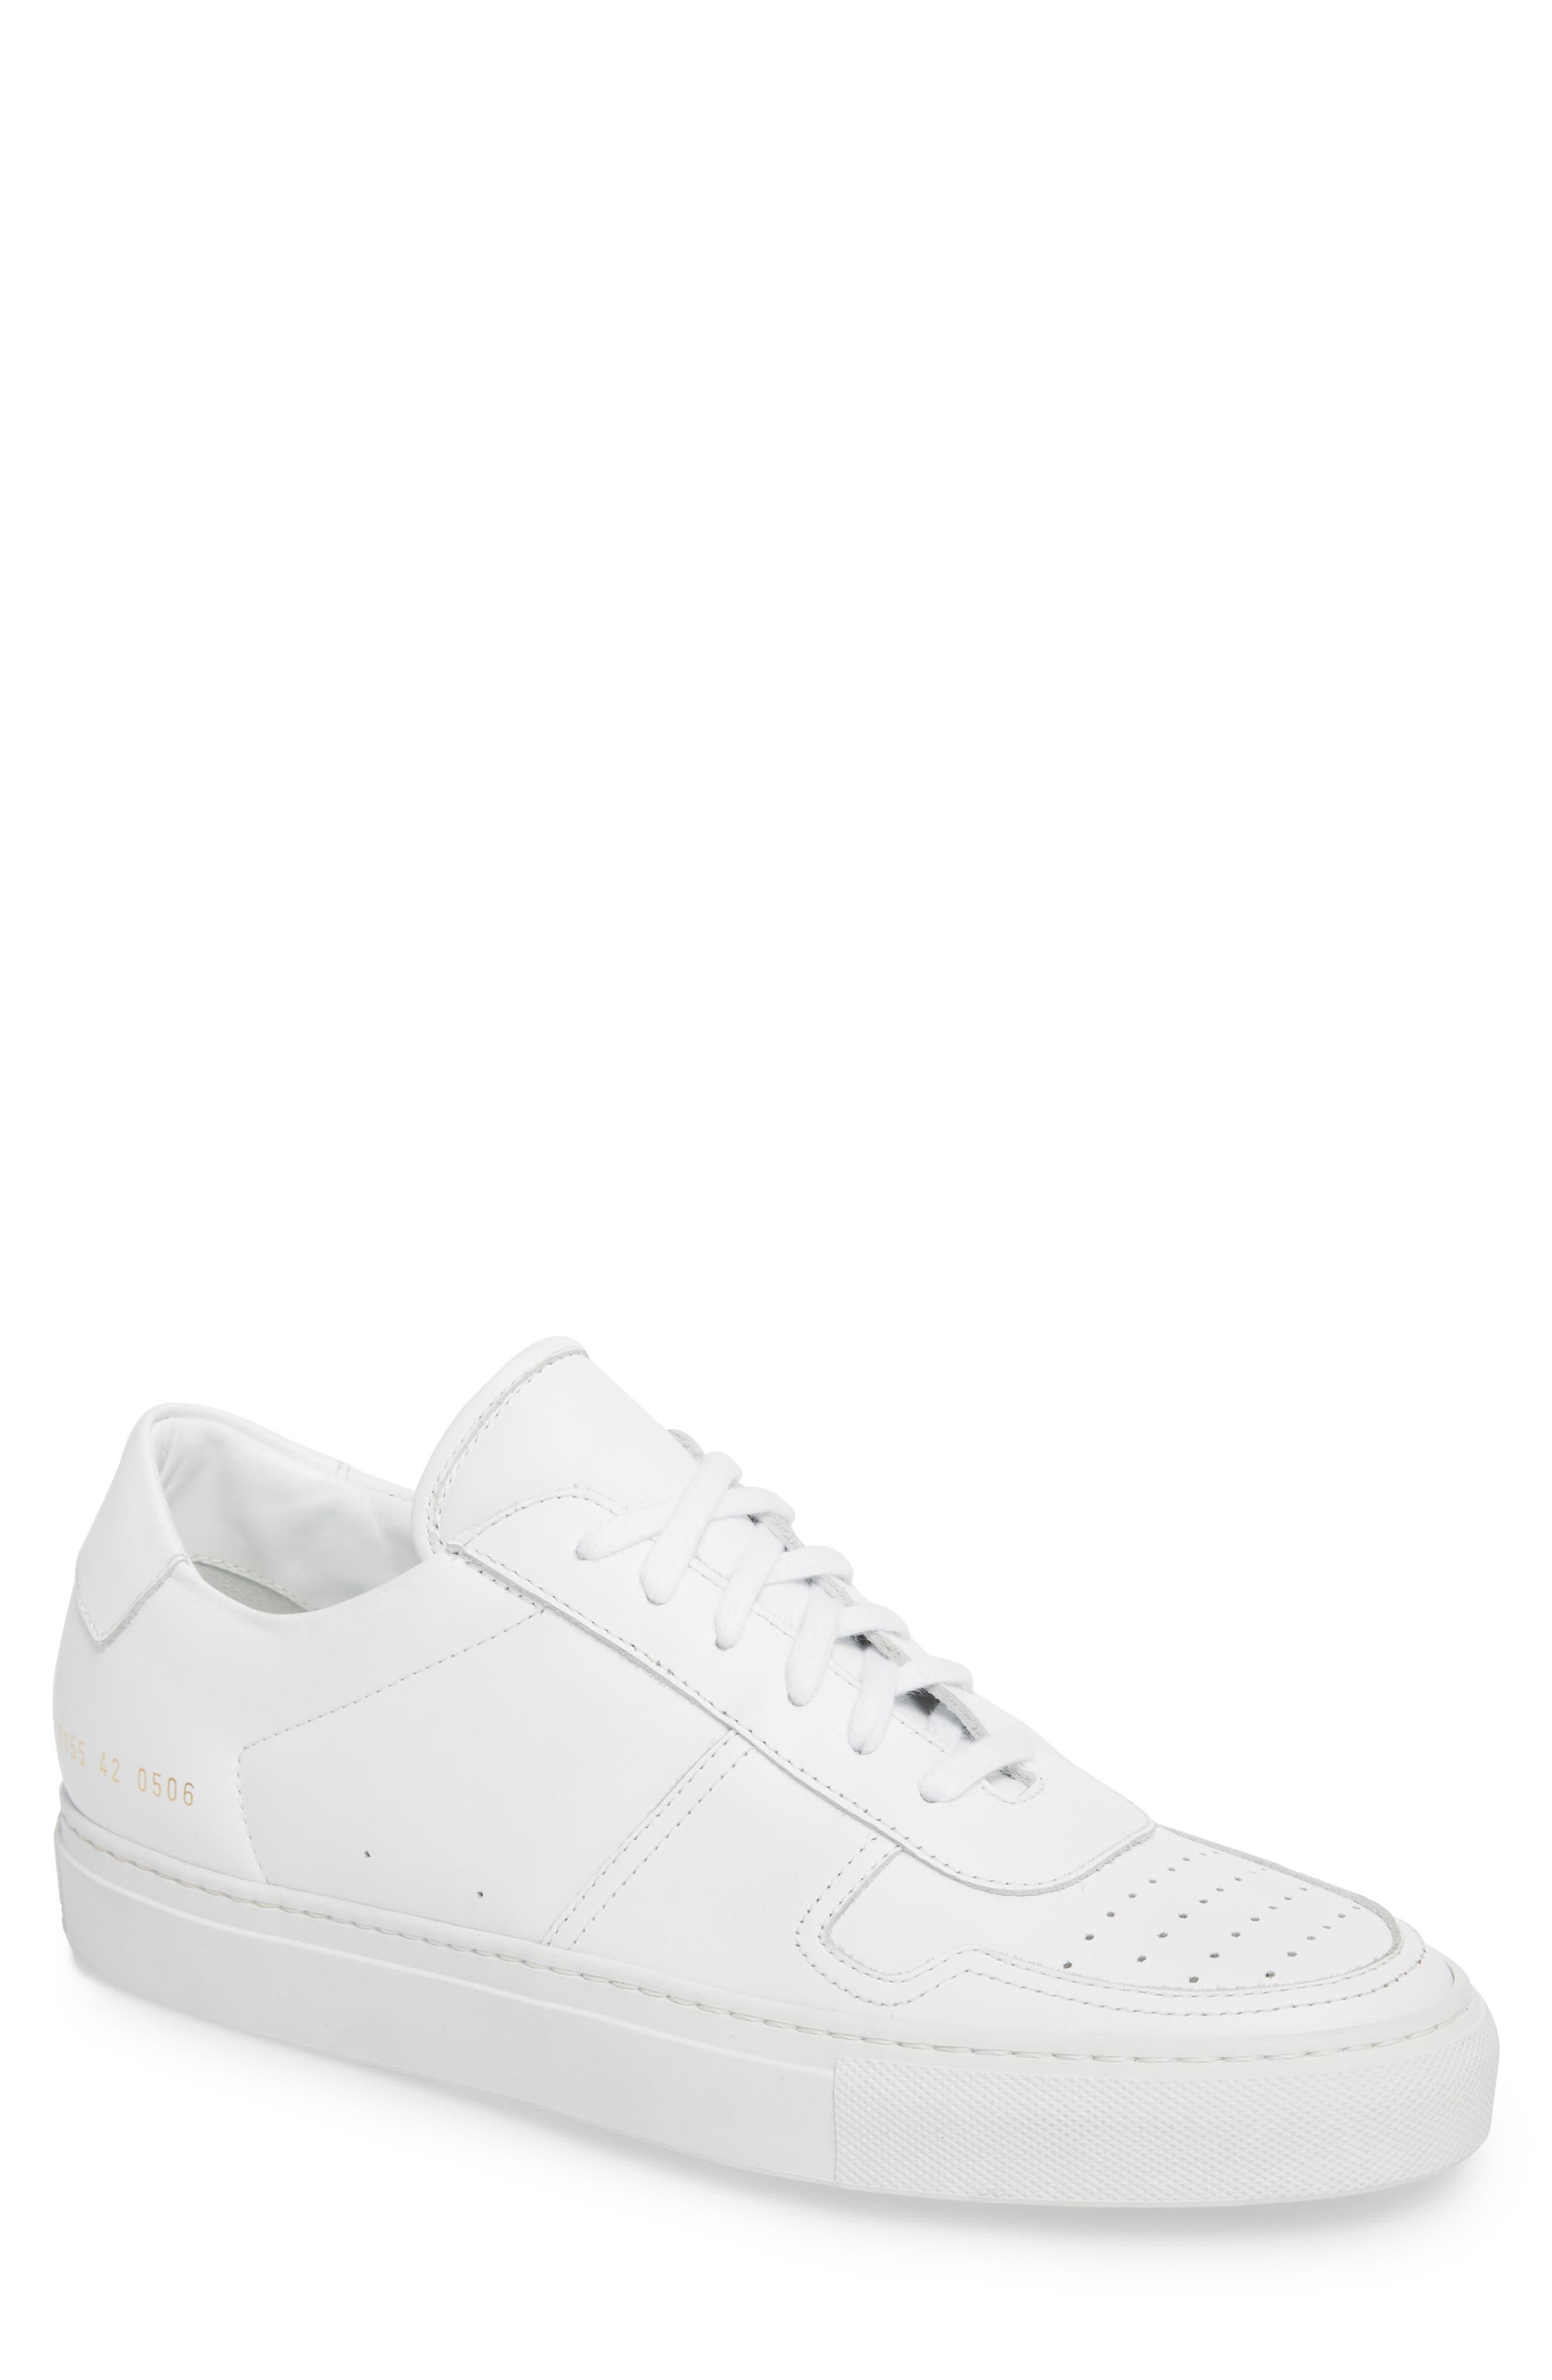 Bball Low Top Sneaker,                         Main,                         color, WHITE LEATHER